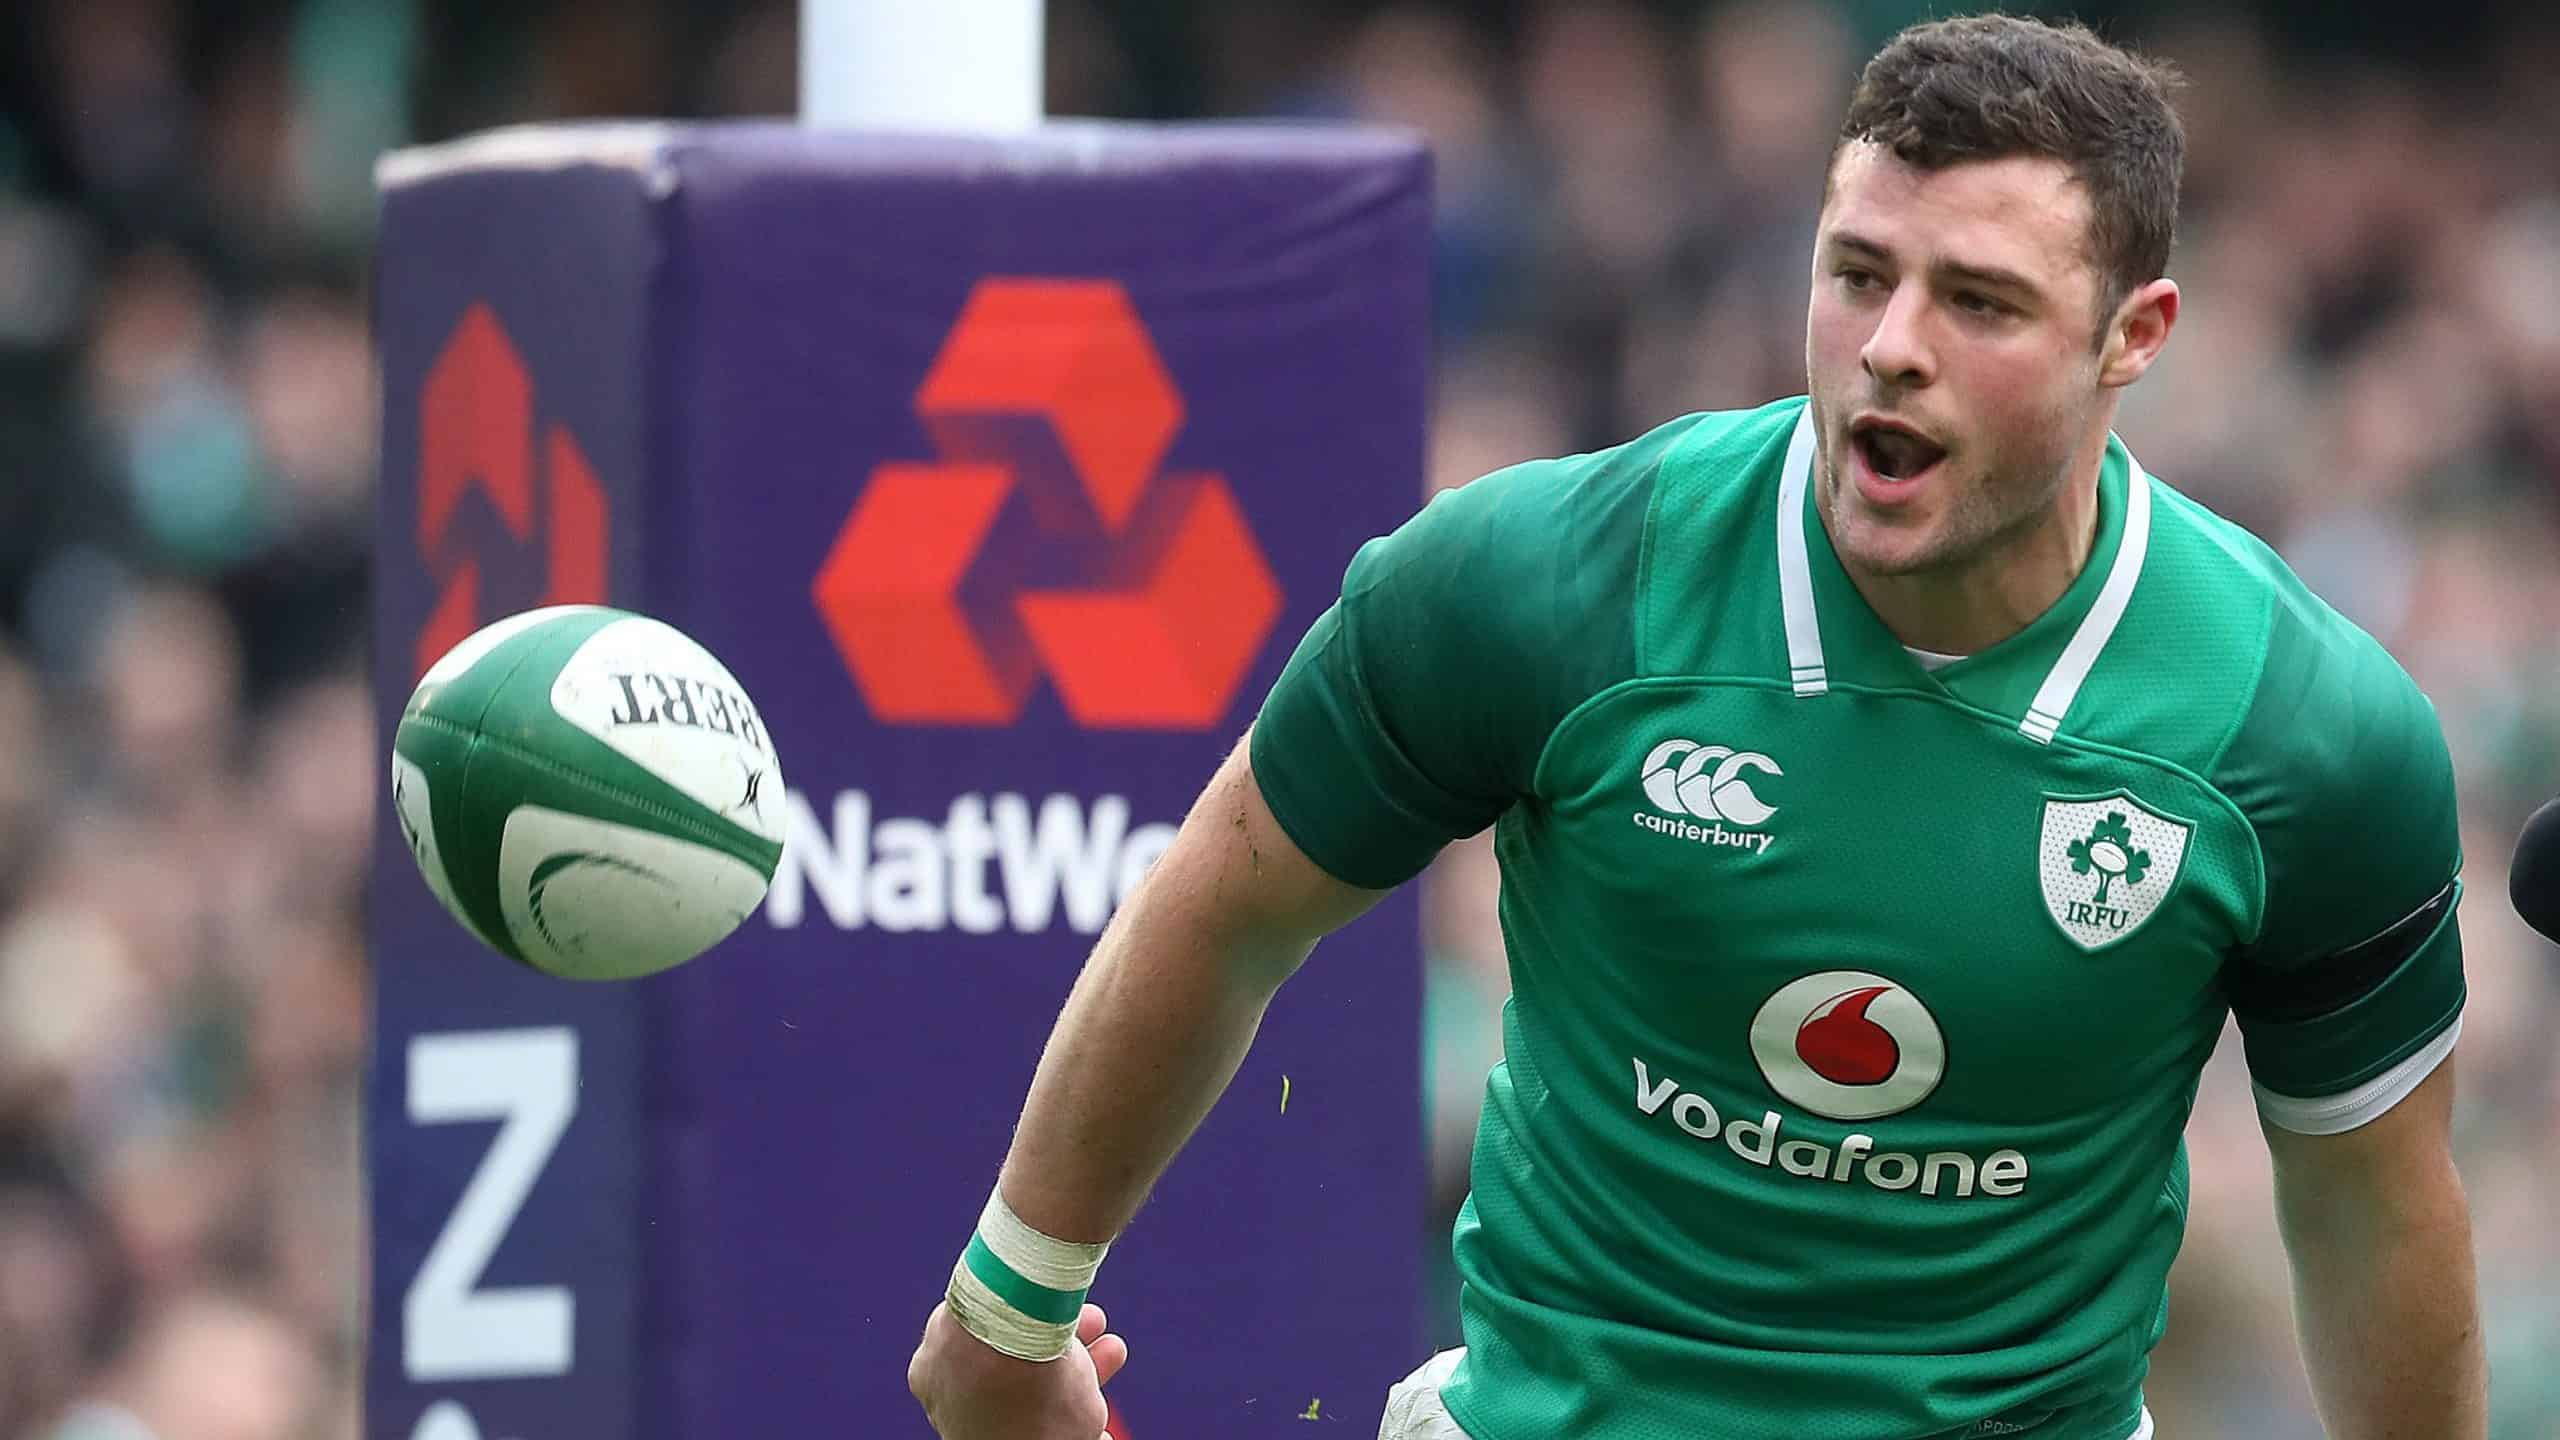 Life in lockdown: Robbie Henshaw on staying sane in a world without sport